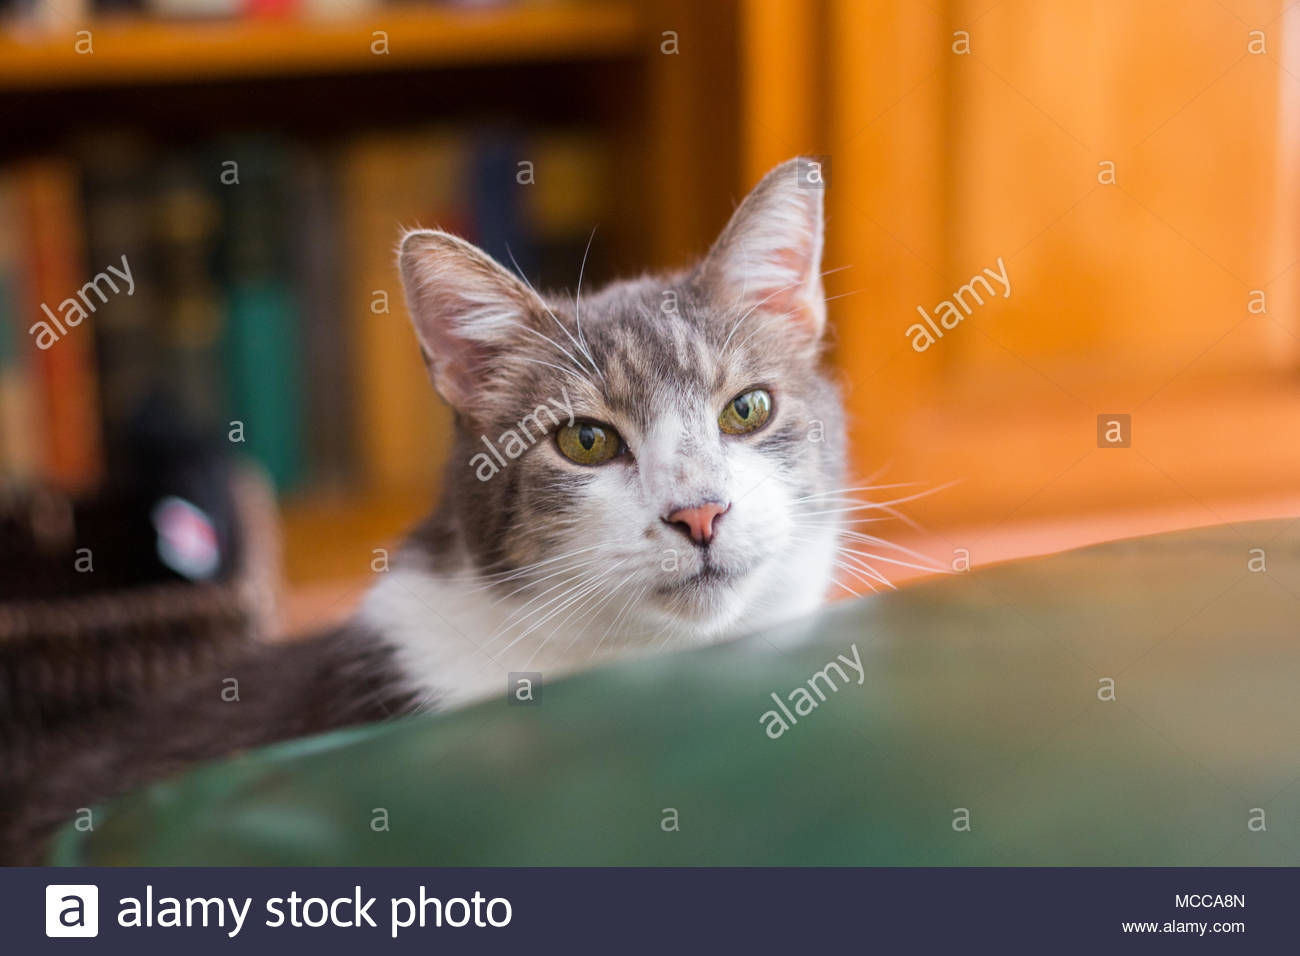 Close-up of curious, green-eyed grey and white tabby mix looking at camera while crouched behind a green chair cushion - Stock Image